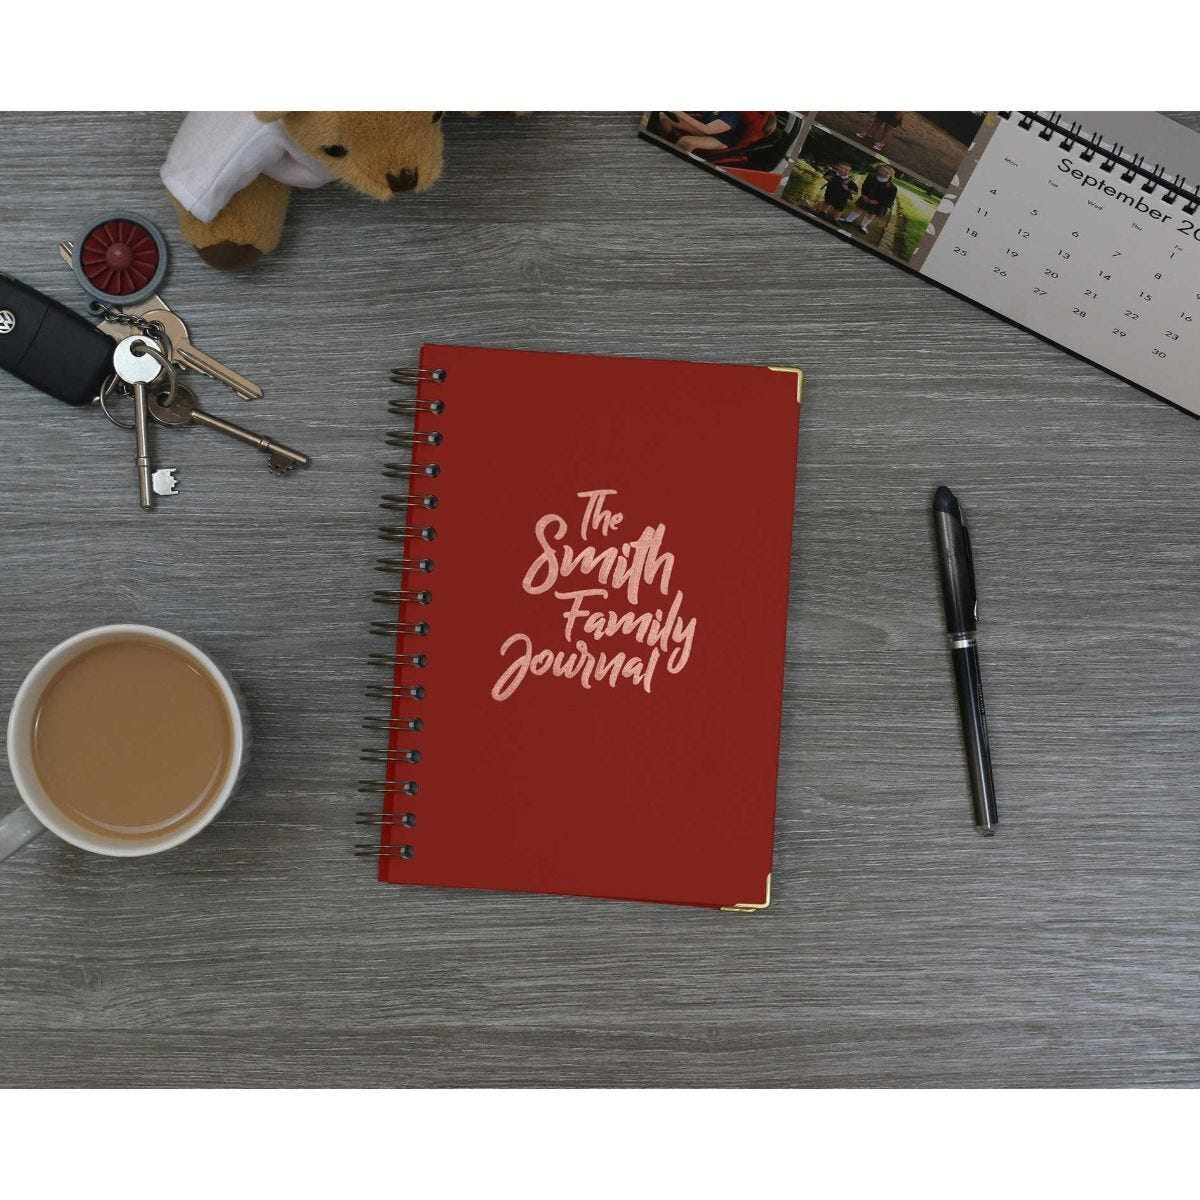 Heritage Personalised Notebook The Journal in Copper Foil Burgundy